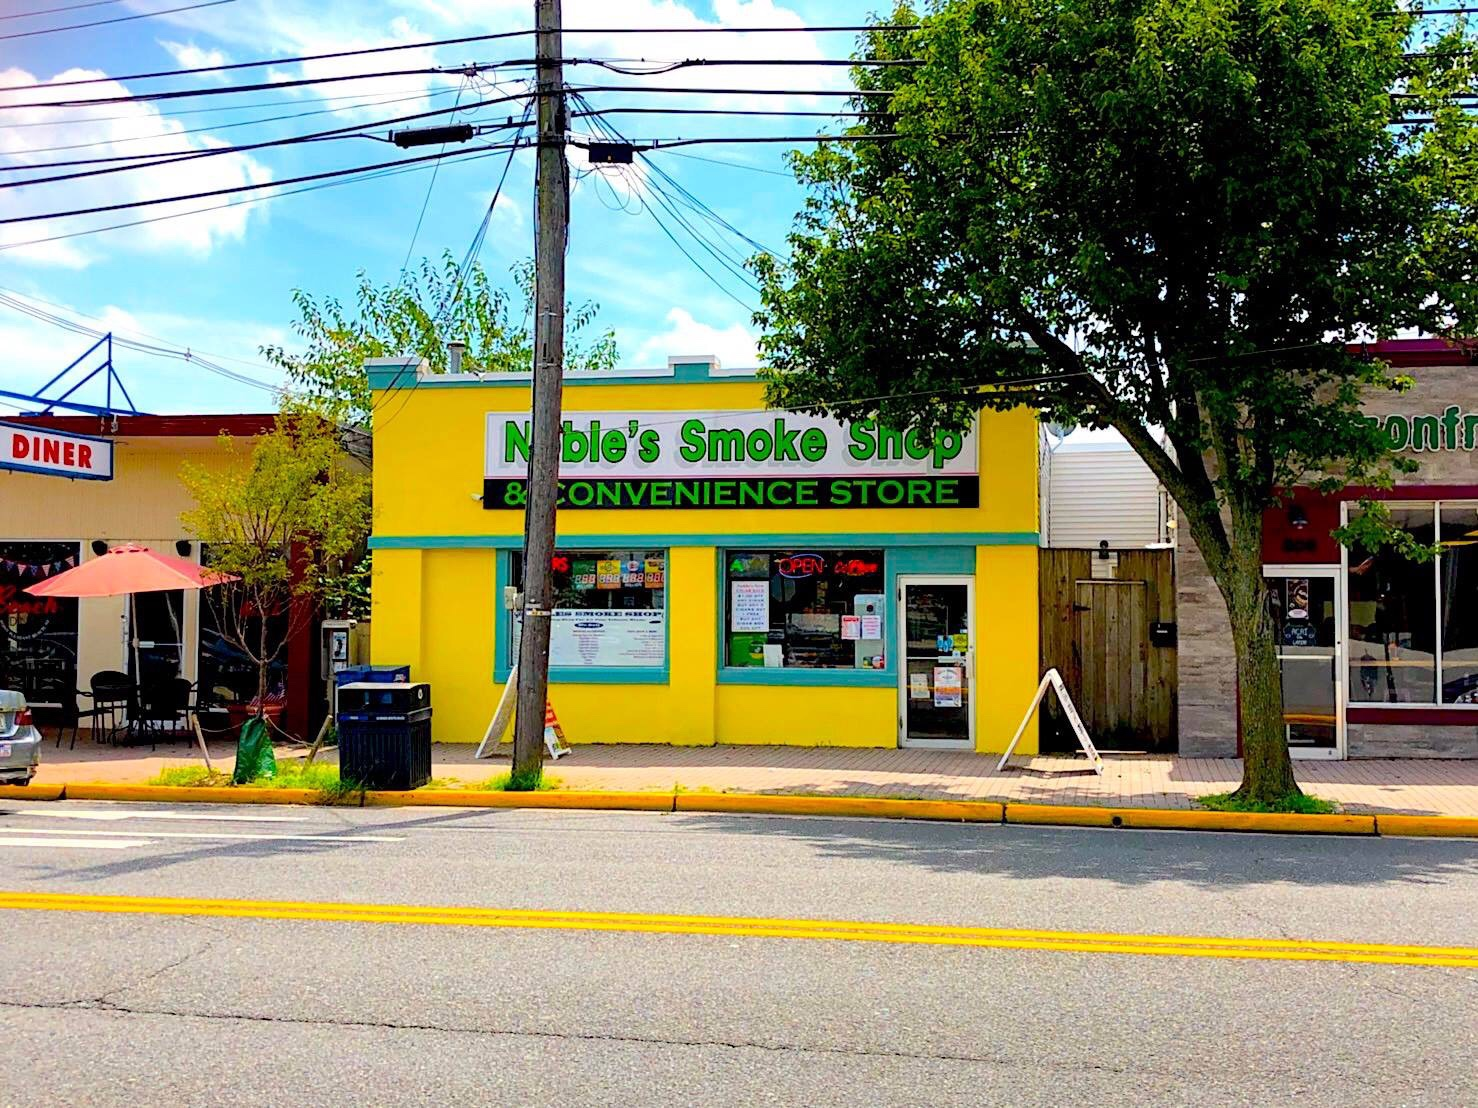 PP BEACH: Smoke Shop Employee Busted For Selling To Underage